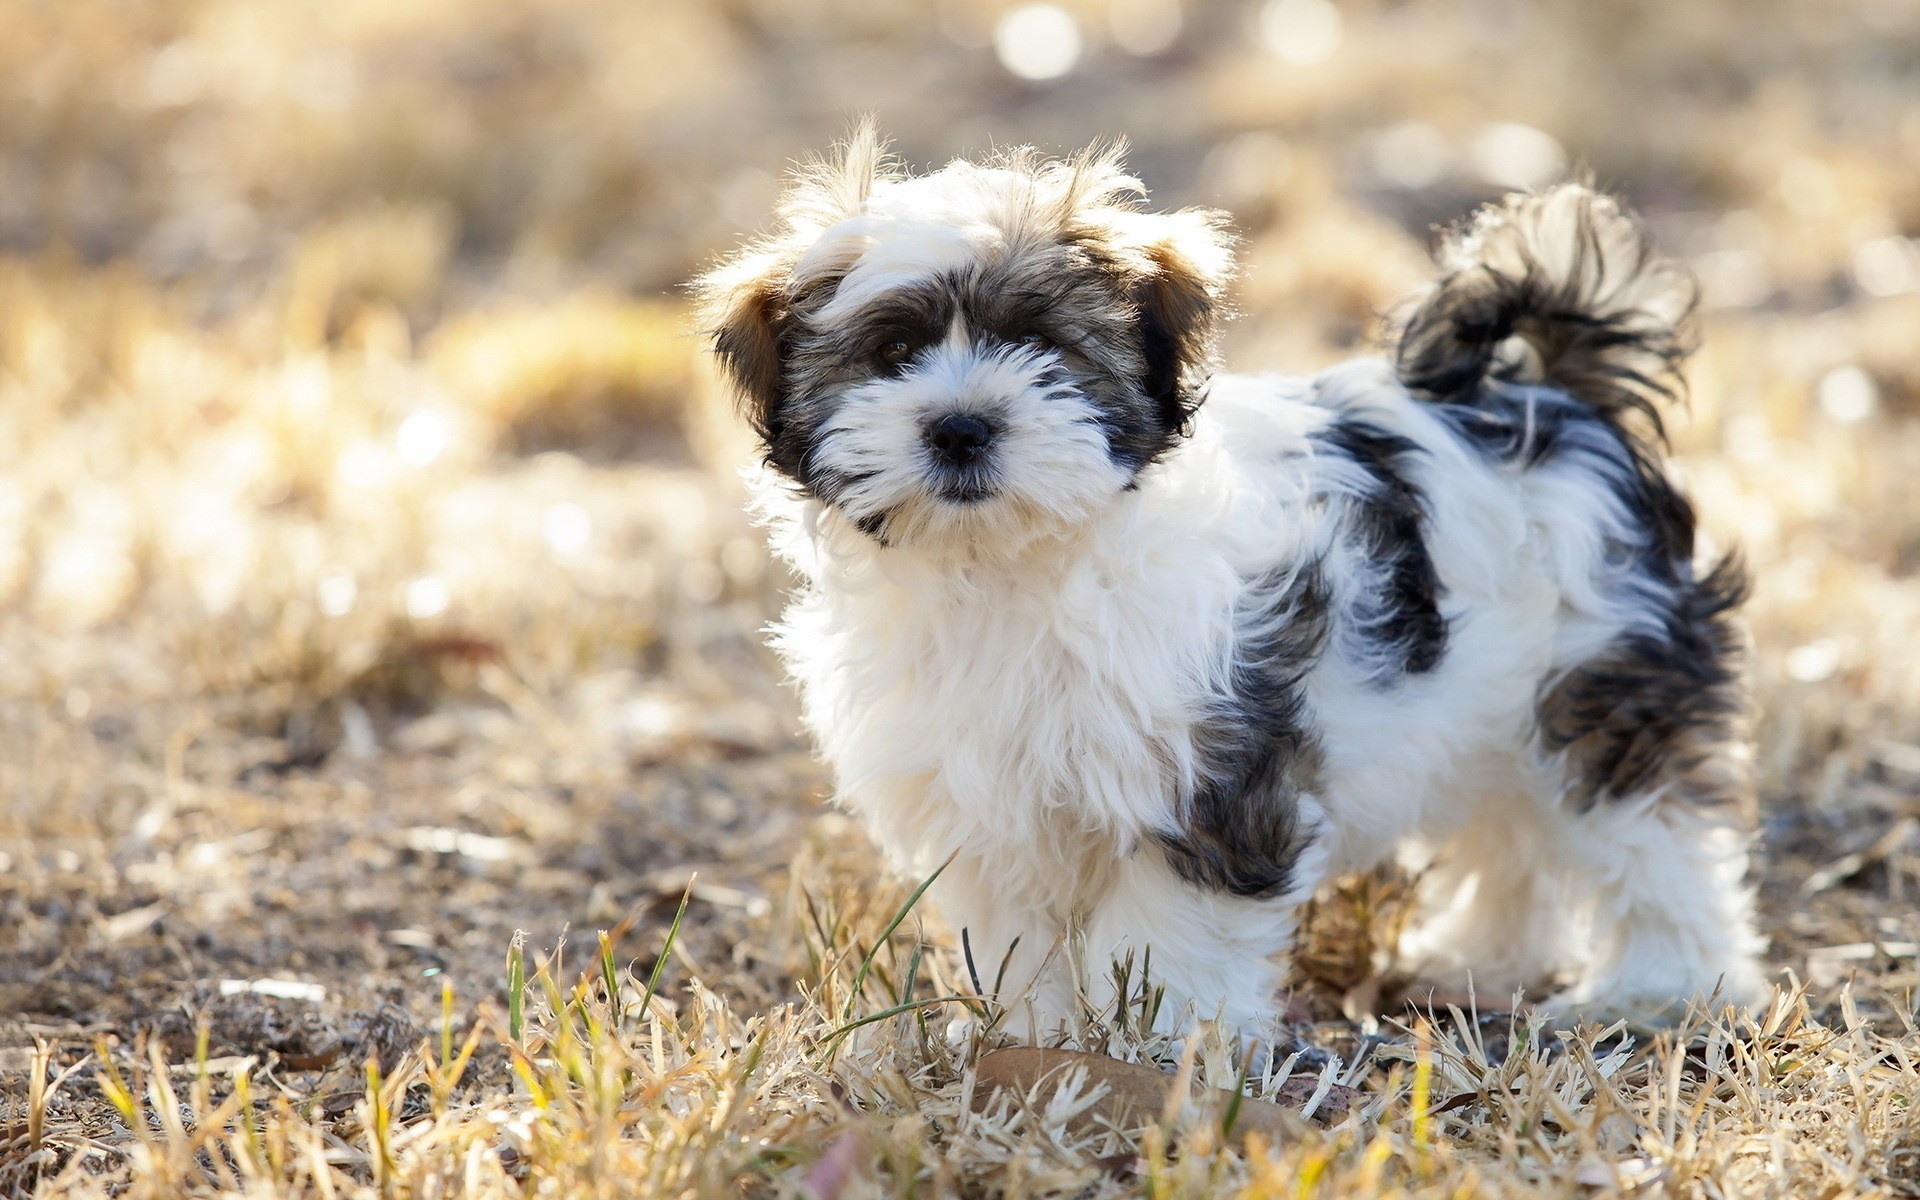 dogs animal dog cute mammal nature pet little grass fur outdoors portrait canine puppy fluffy dog cute dog